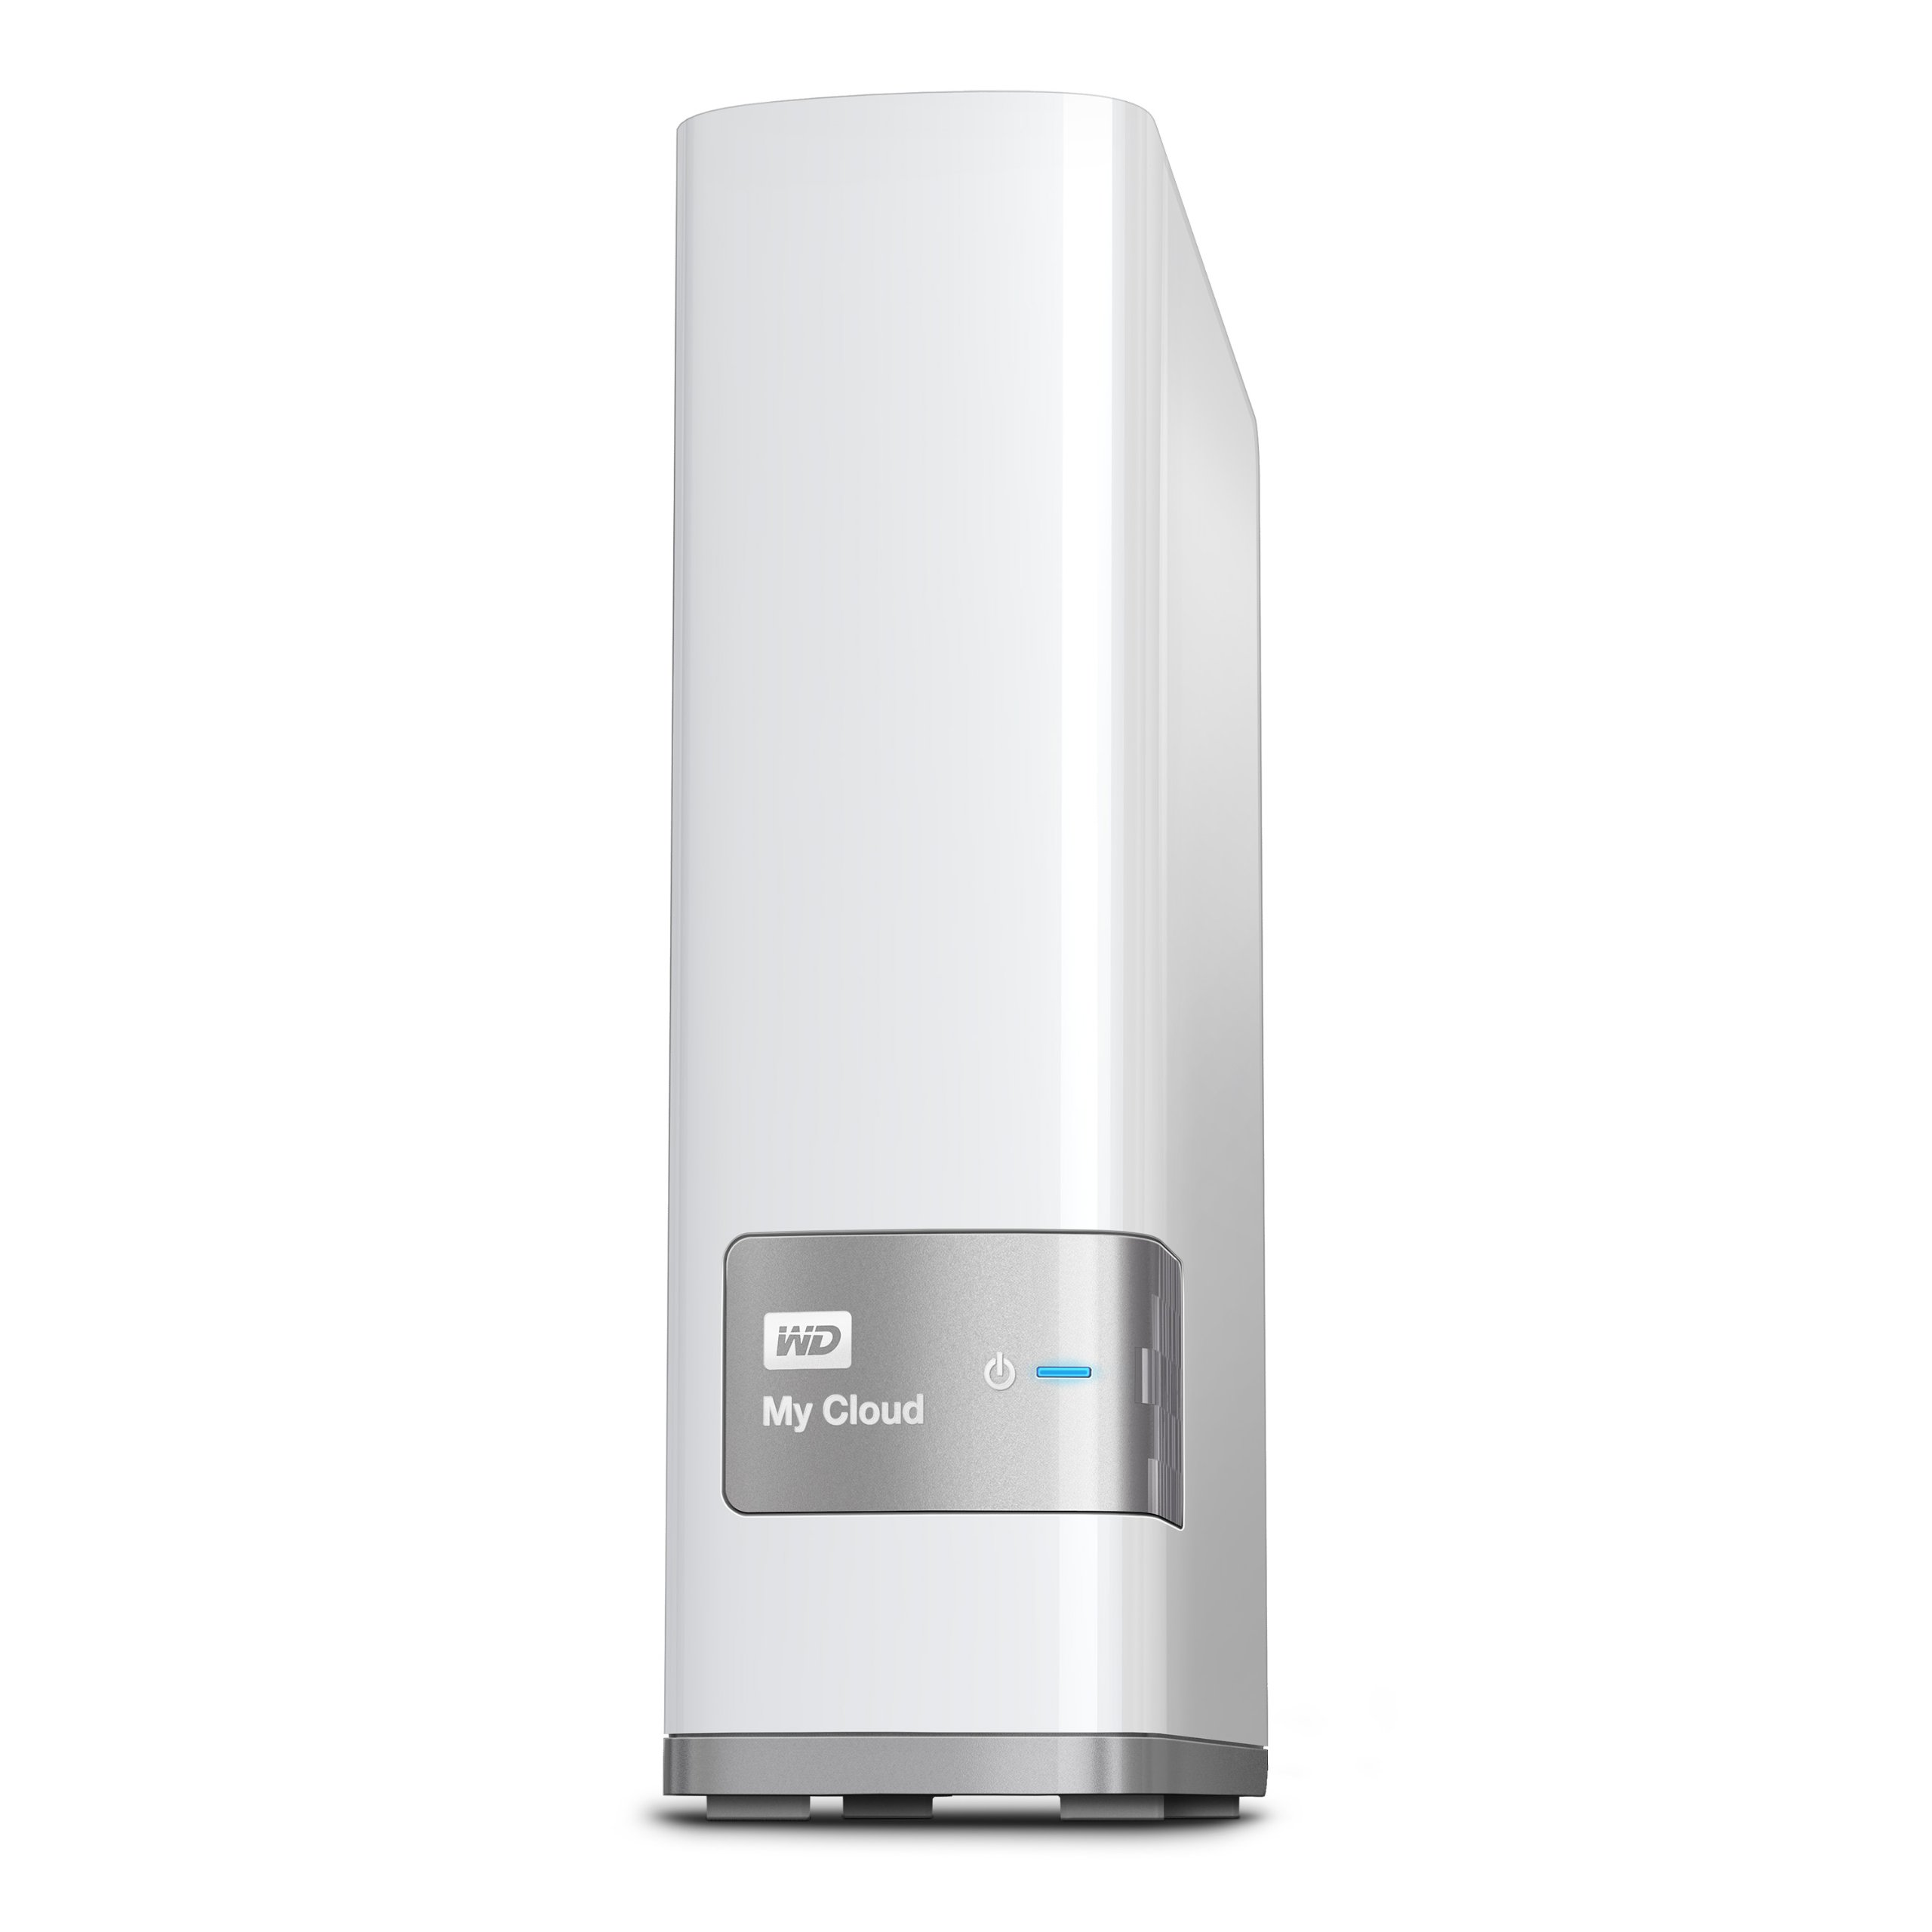 WD 2TB My Cloud Personal Network Attached Storage - NAS - WDBCTL0020HWT-NESN by Western Digital